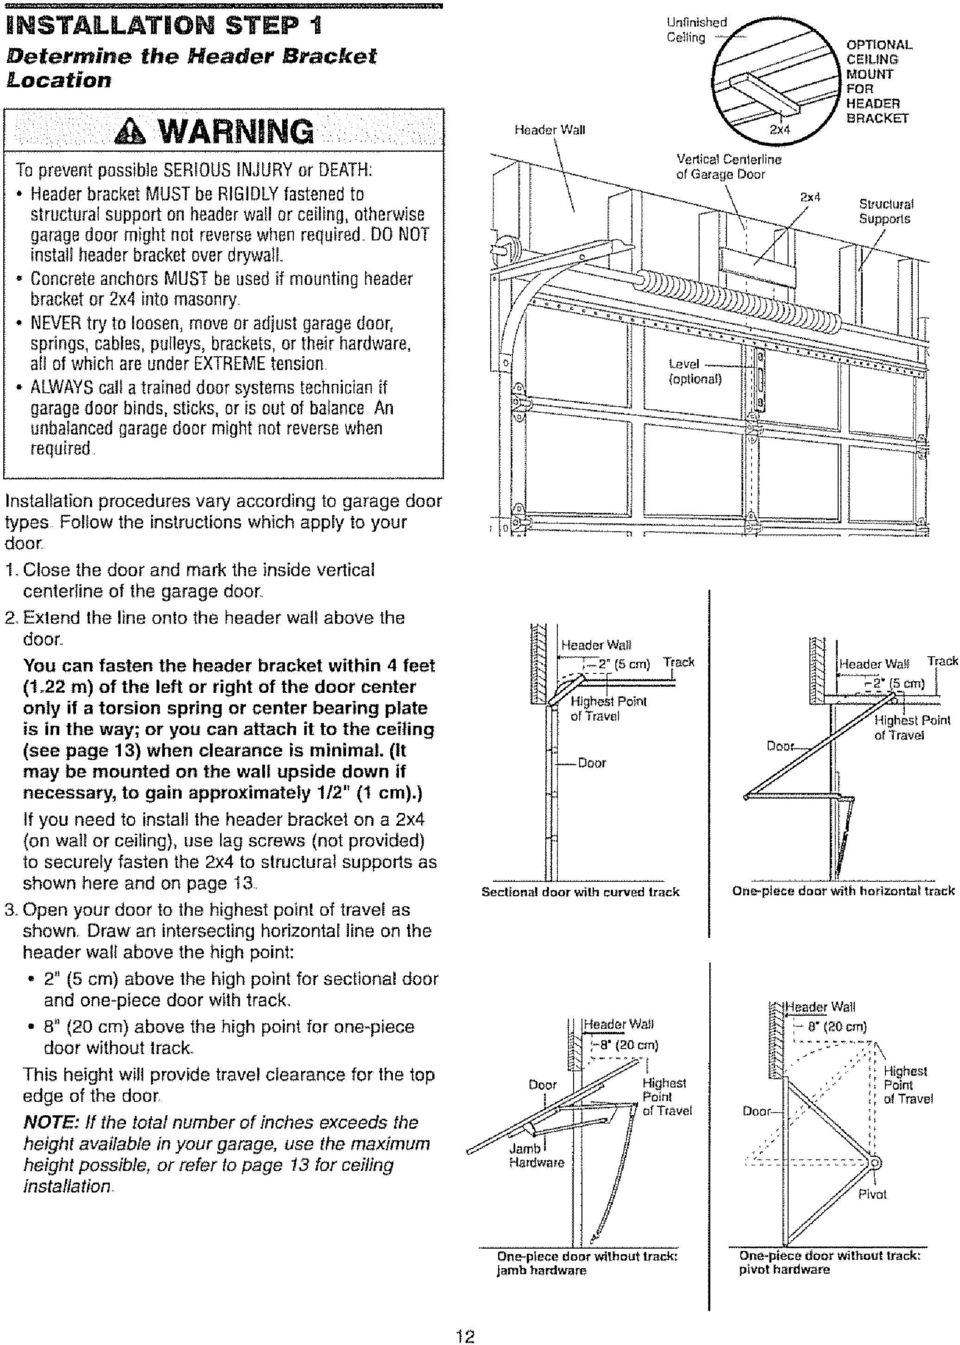 garagedoor might net reversewhen required=do NOT install headerbracketover drywall,, - ConcreteanchorsMUSTbeused if mounting header bracketor 2x4 into masonry - NEVERtry to loosen, moveor adjust